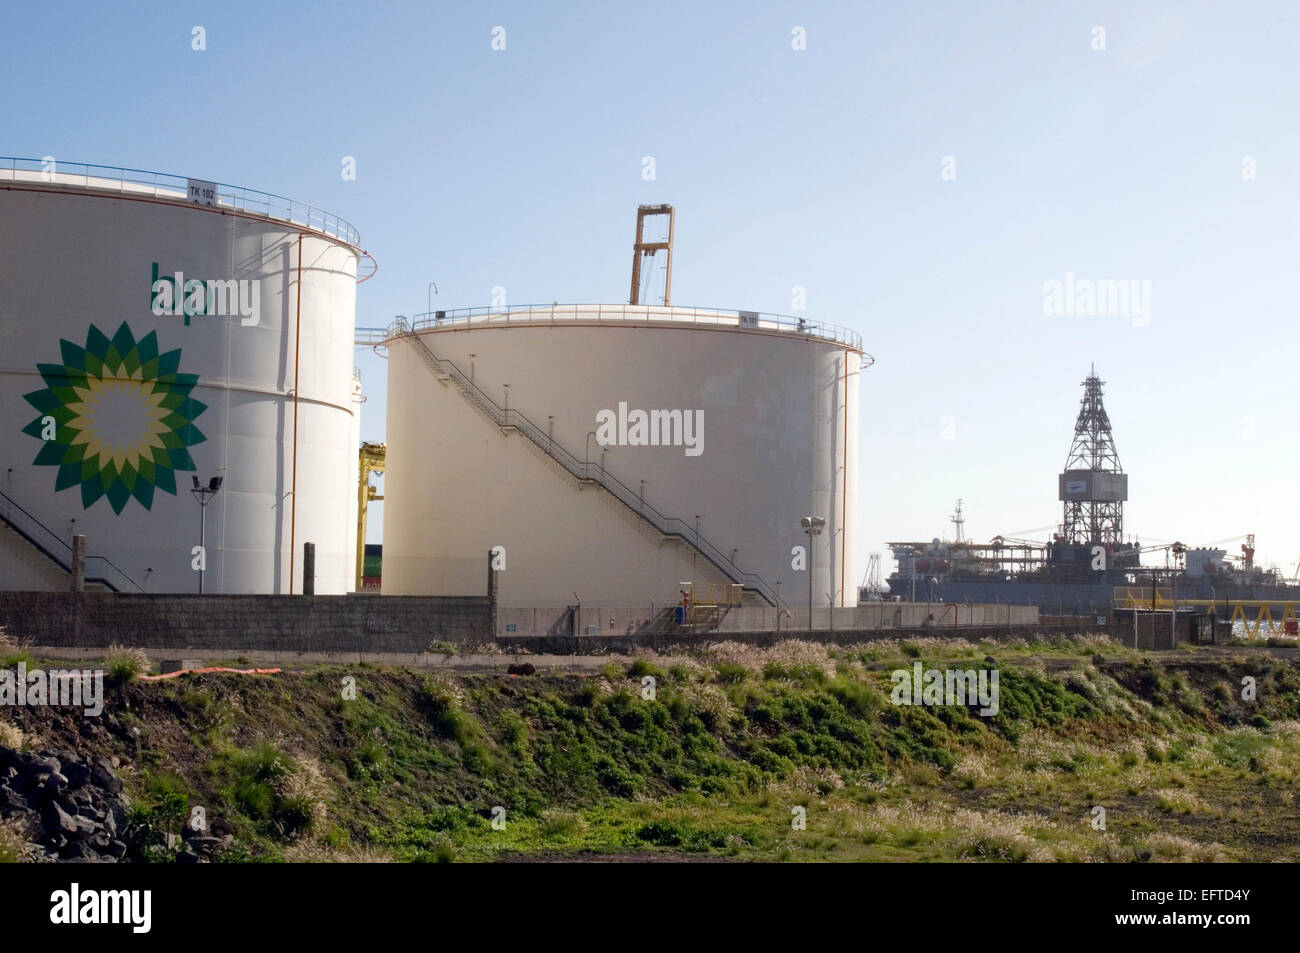 bp oil storage tank tanks British petroleum Stock Photo